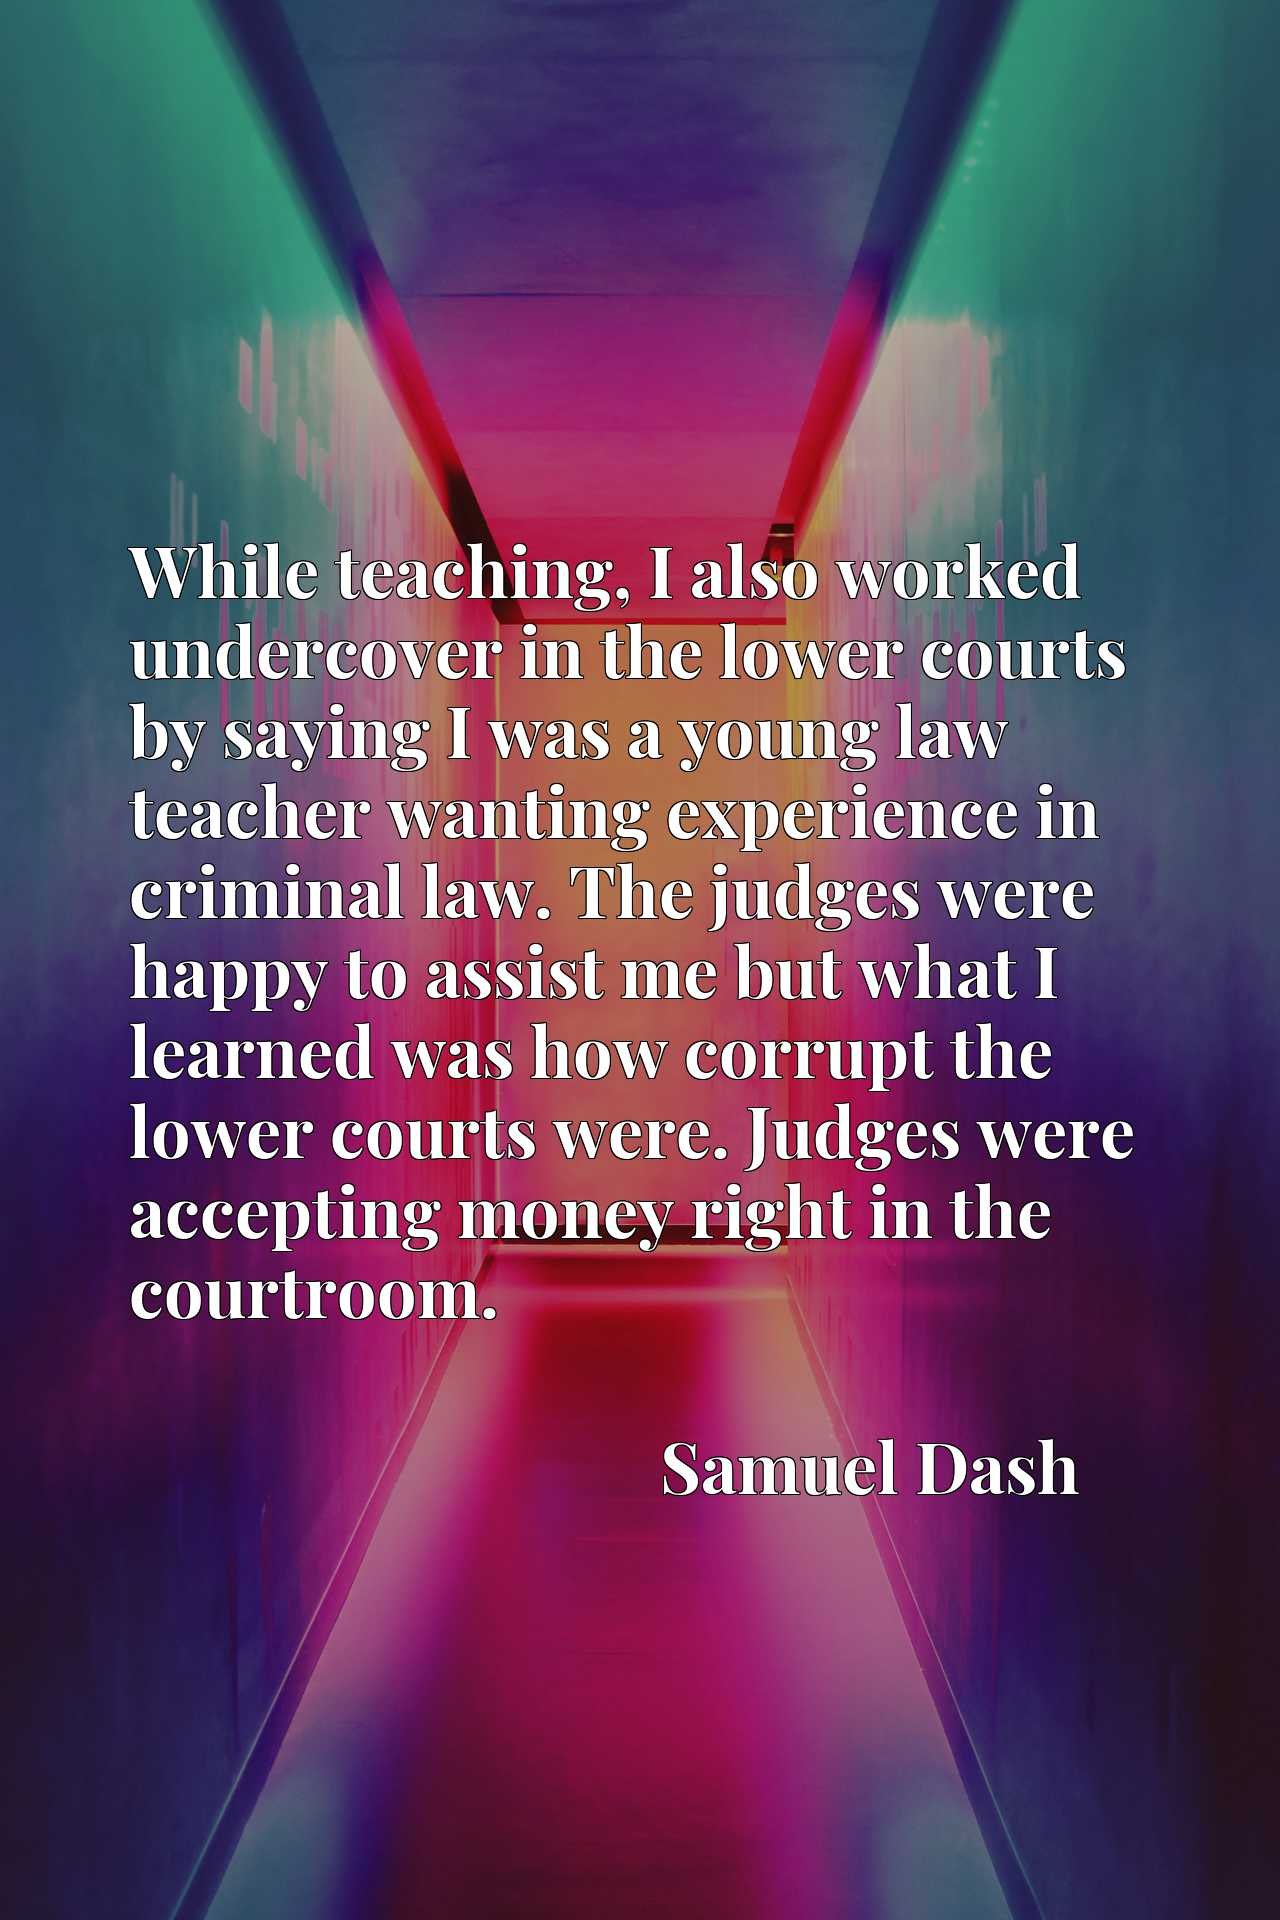 While teaching, I also worked undercover in the lower courts by saying I was a young law teacher wanting experience in criminal law. The judges were happy to assist me but what I learned was how corrupt the lower courts were. Judges were accepting money right in the courtroom.